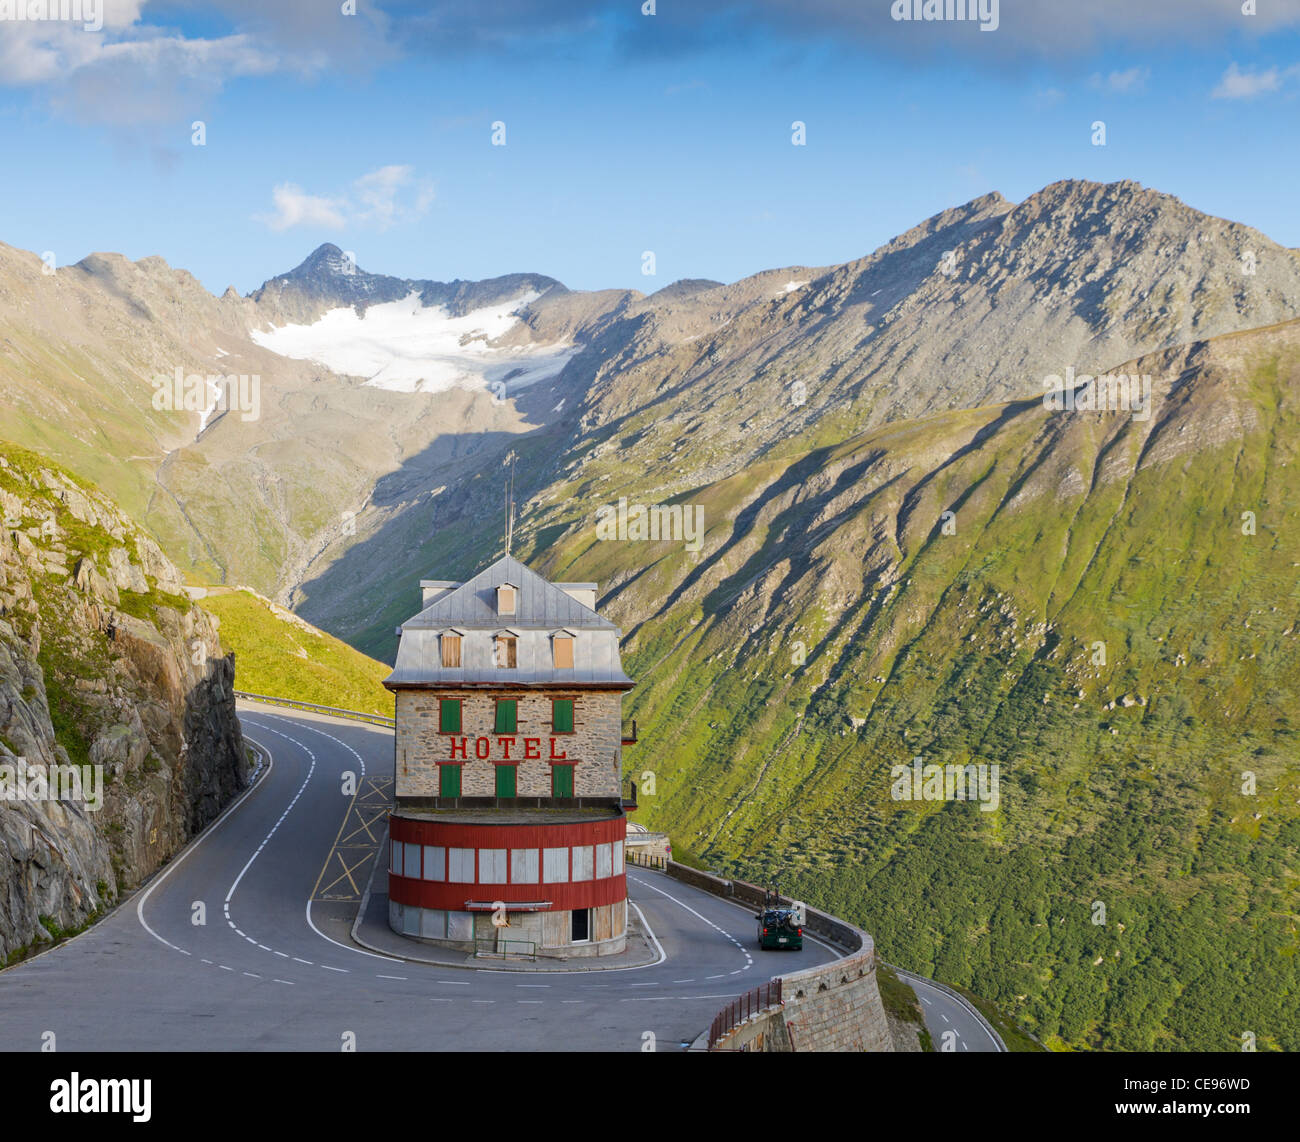 lonely, vintage hotel at Furka pass, set in barren alpine mountains in pass road bend - Stock Image